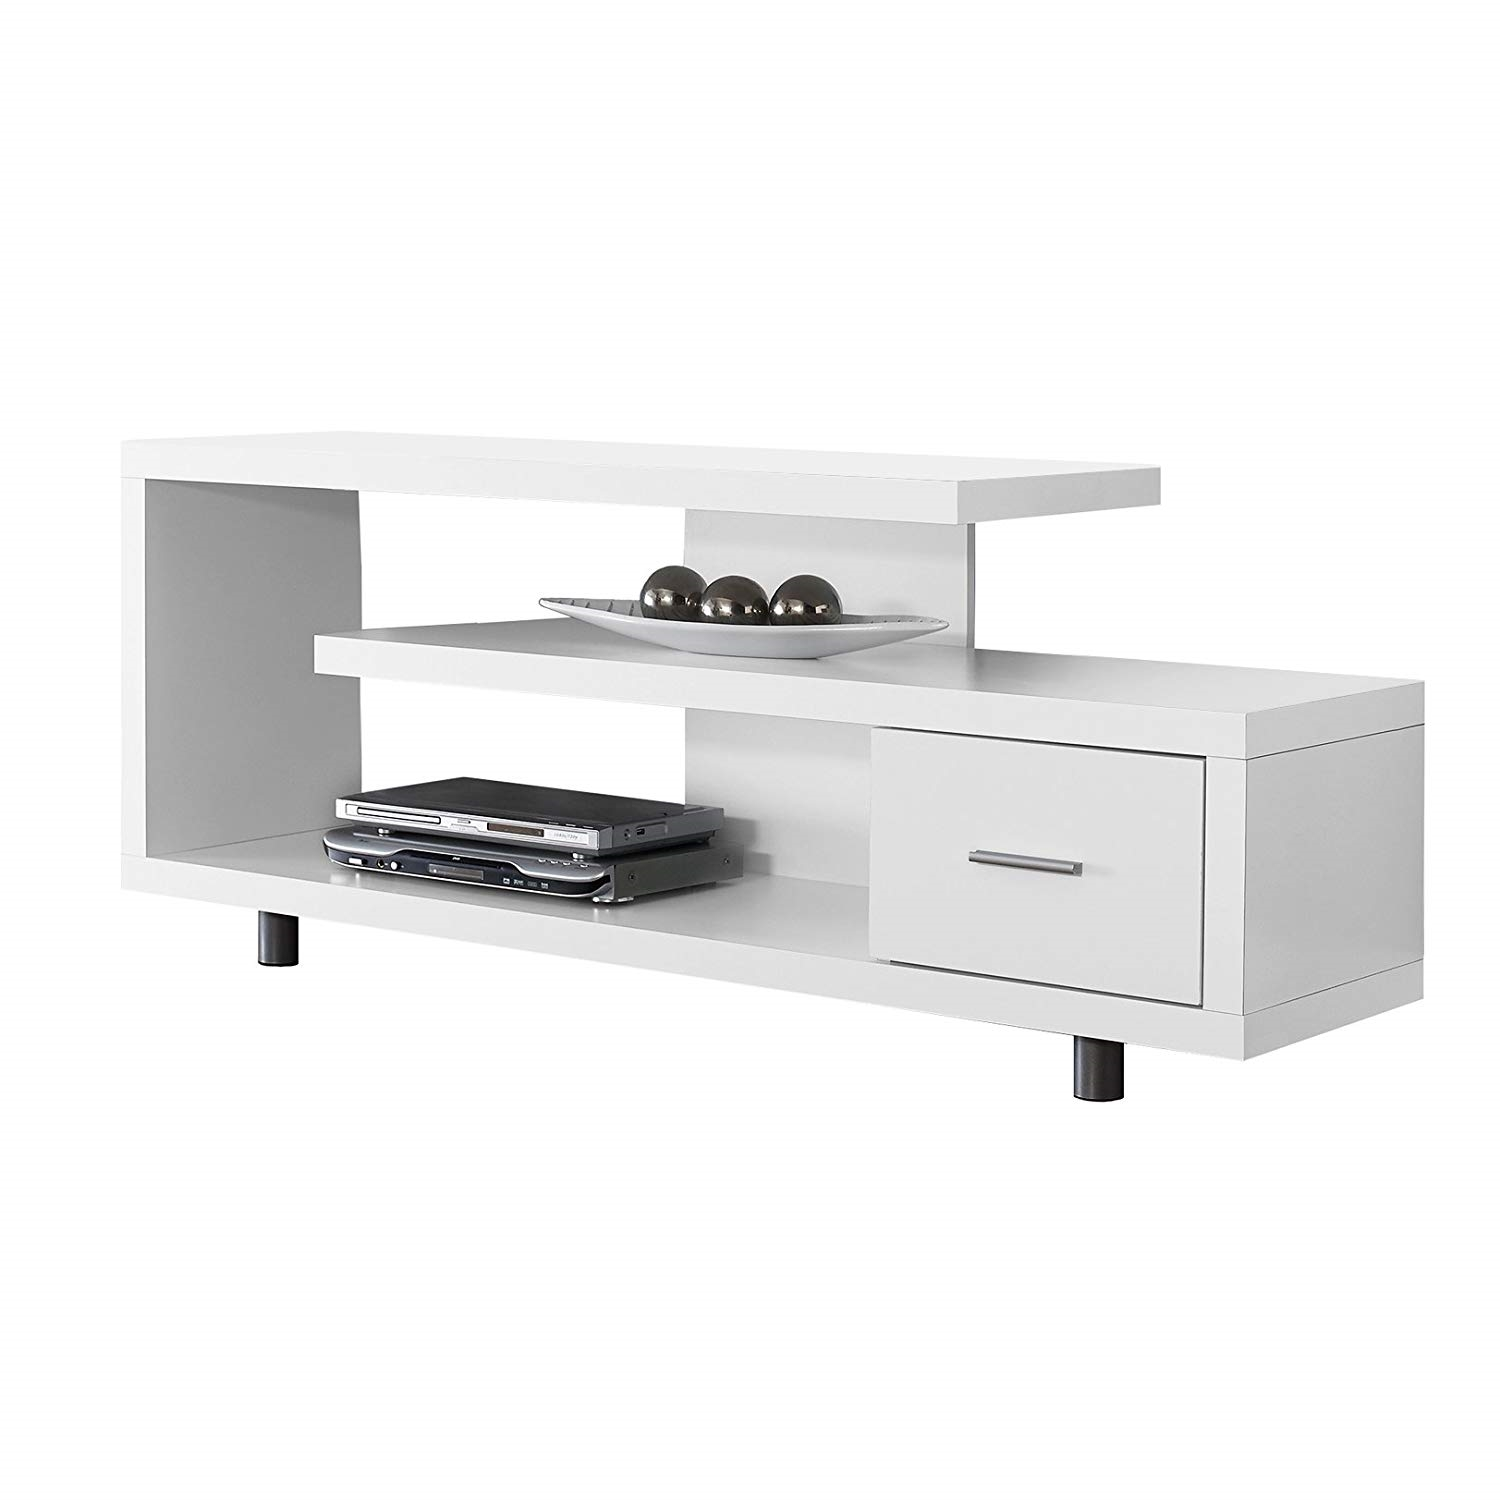 White Modern Tv Stand Fits Up To 60 Inch Flat Screen Tv